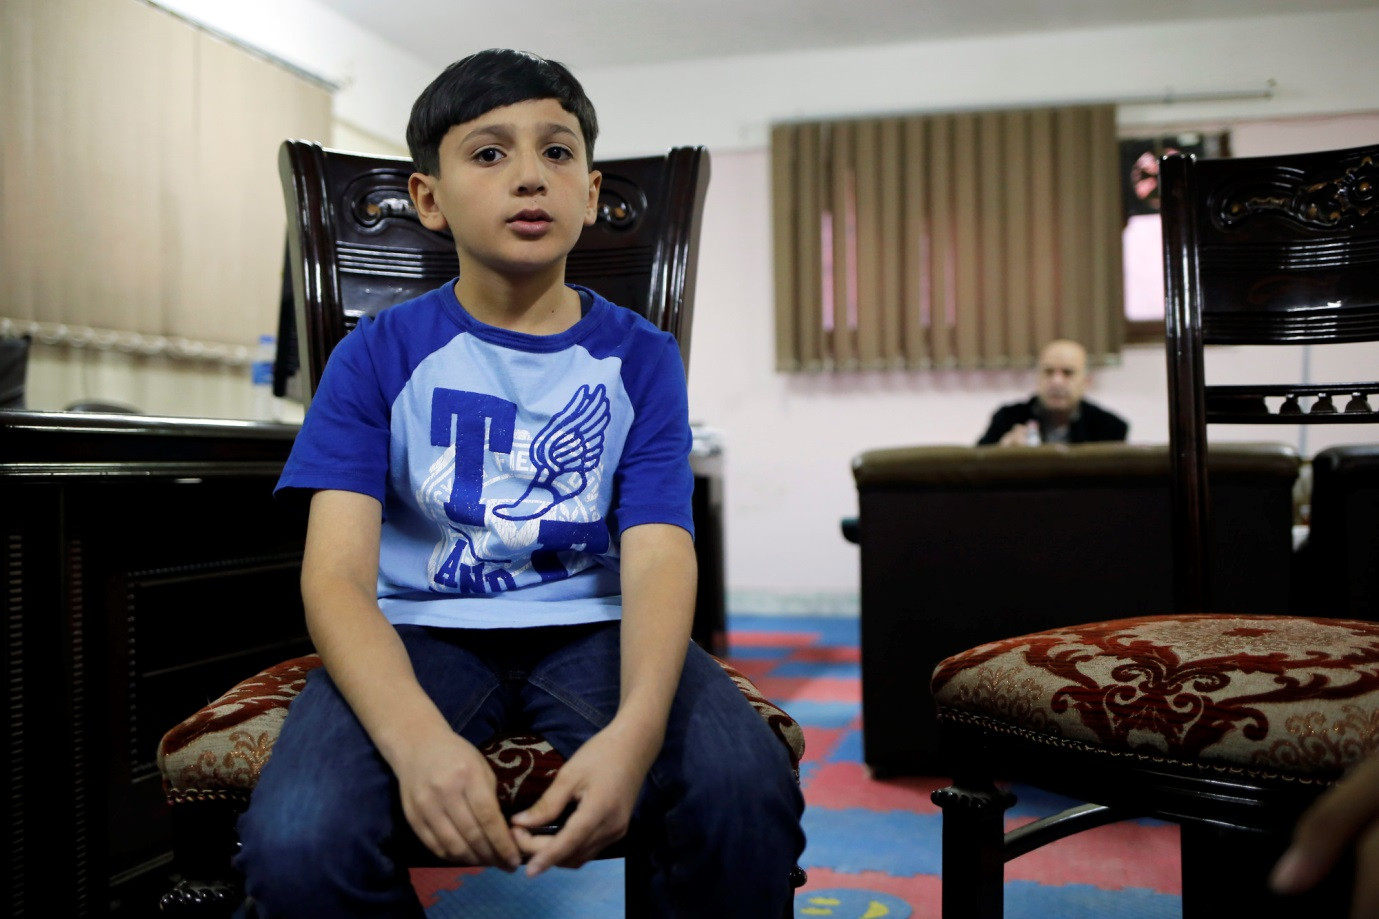 Ahmed slept under his bed after escaping Syria